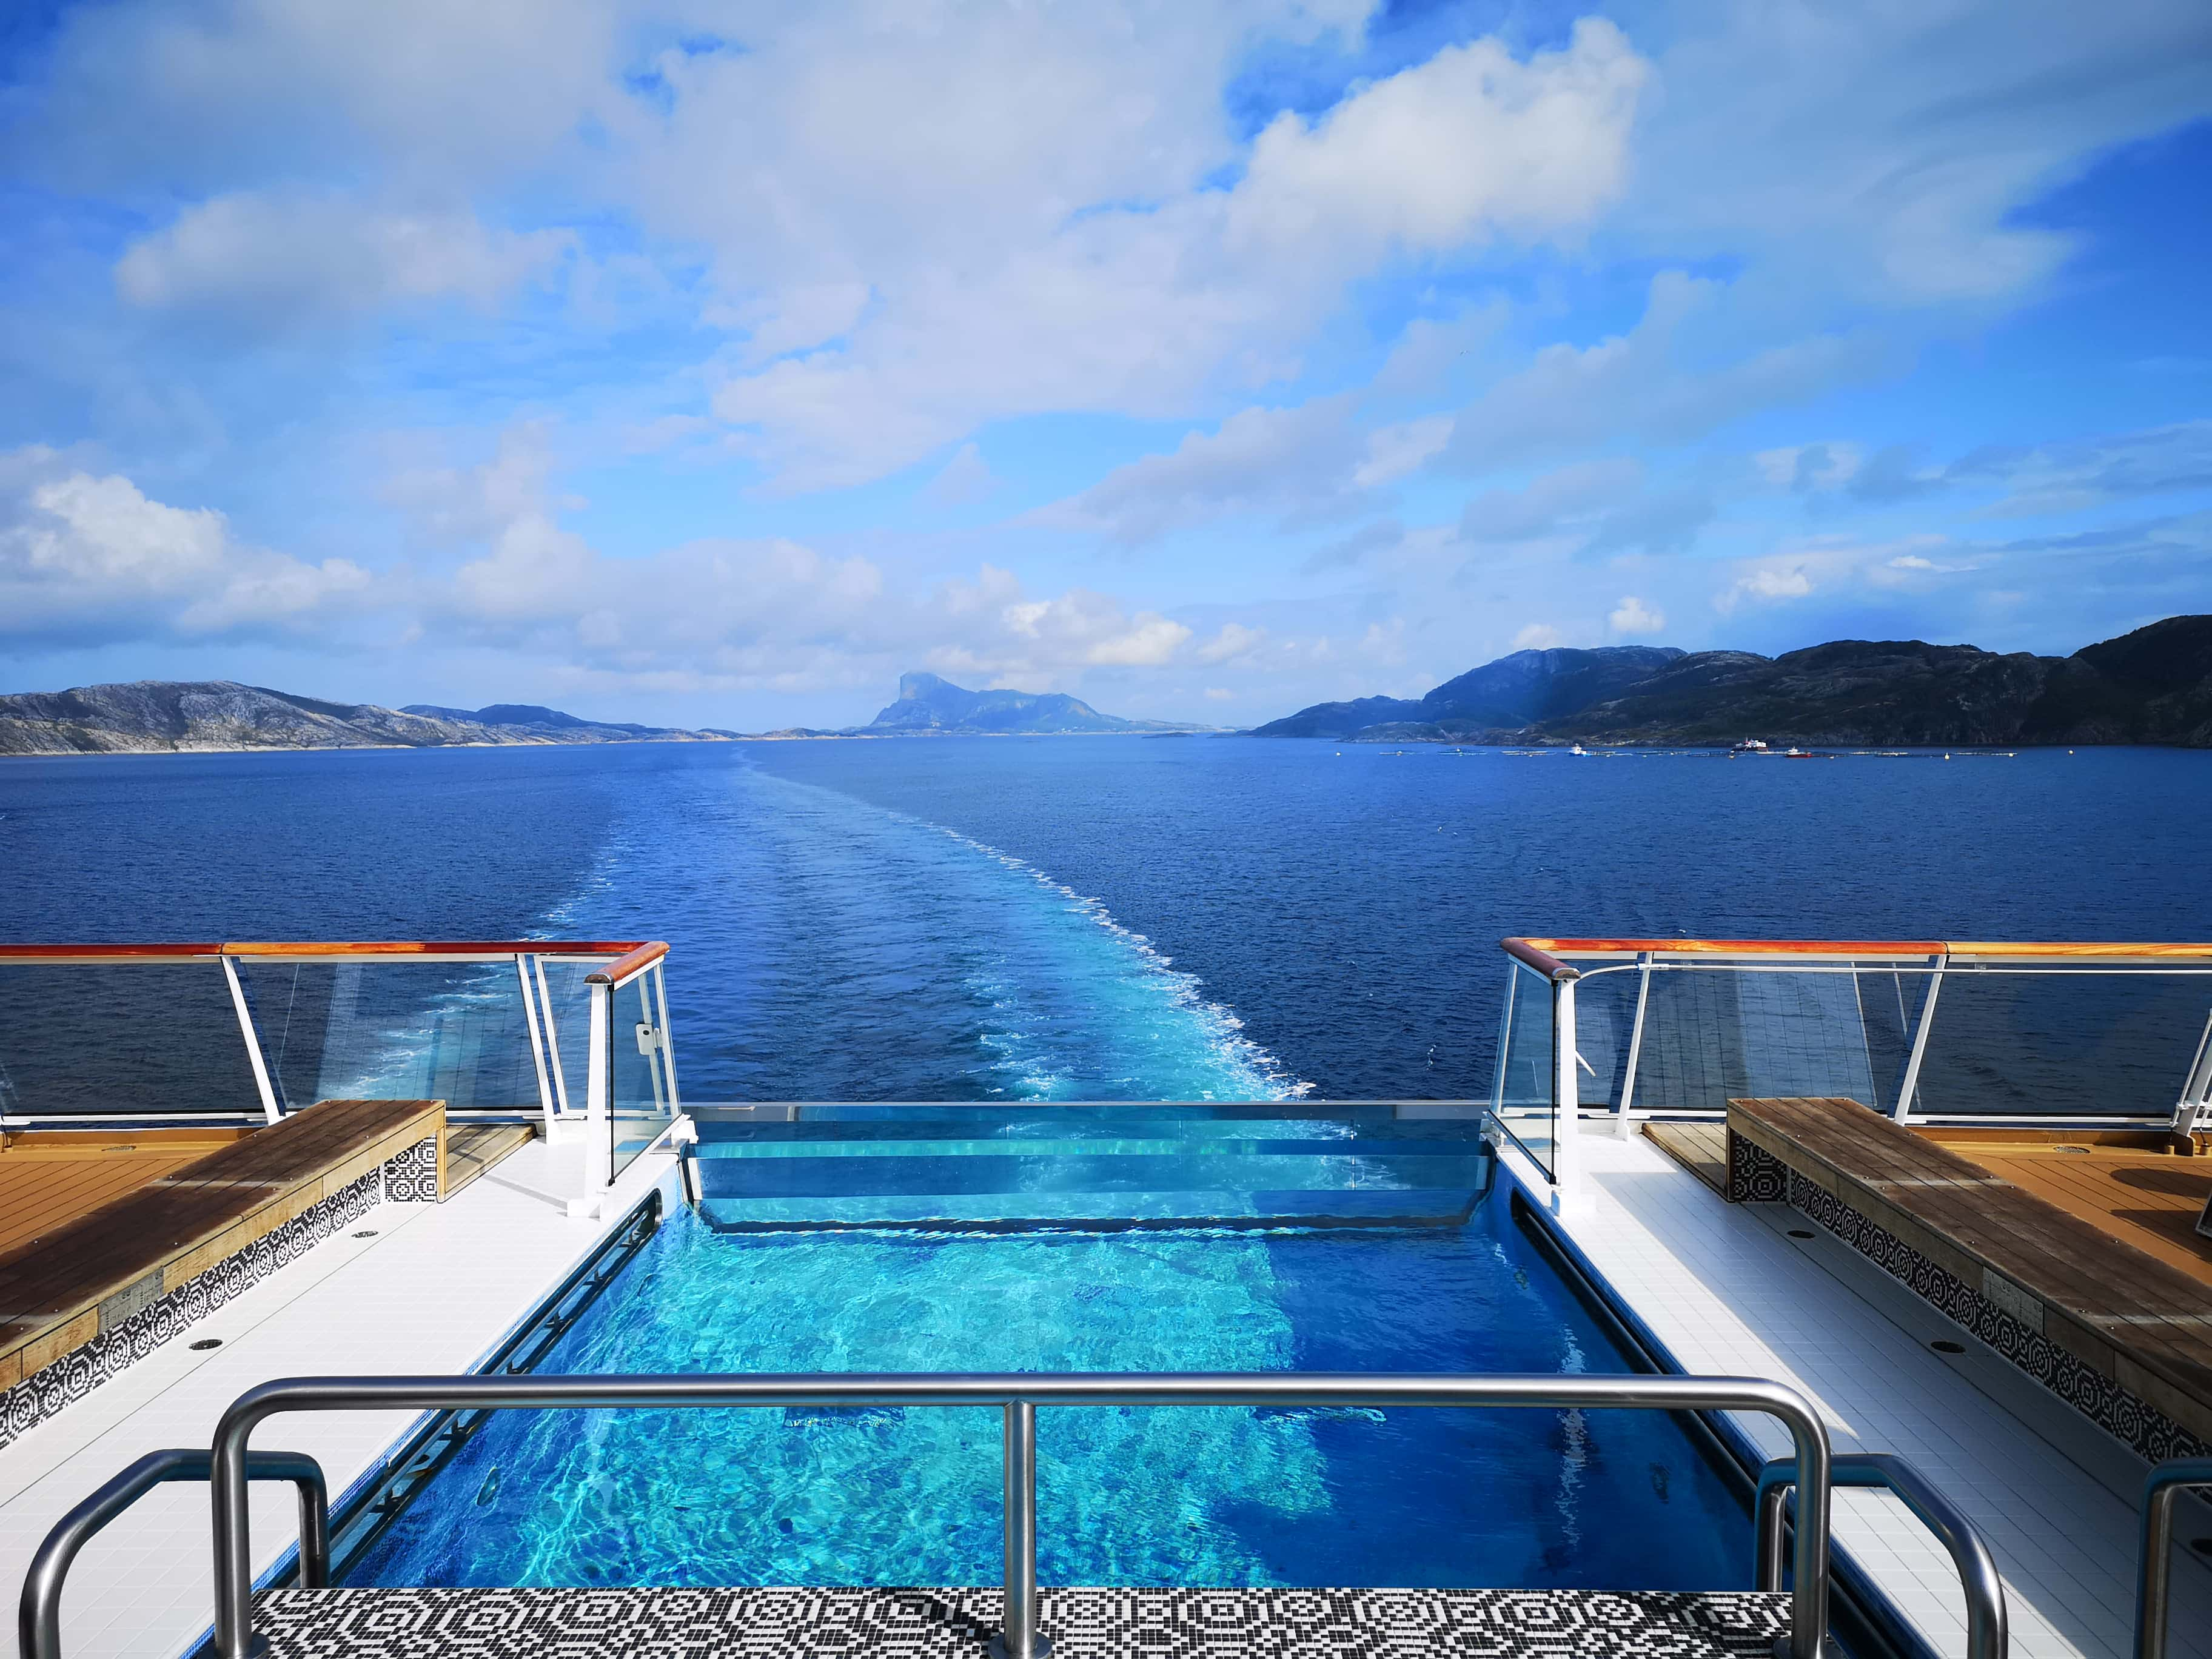 Viking Cruises Sea - Infinity Pool View of Ocean Norway